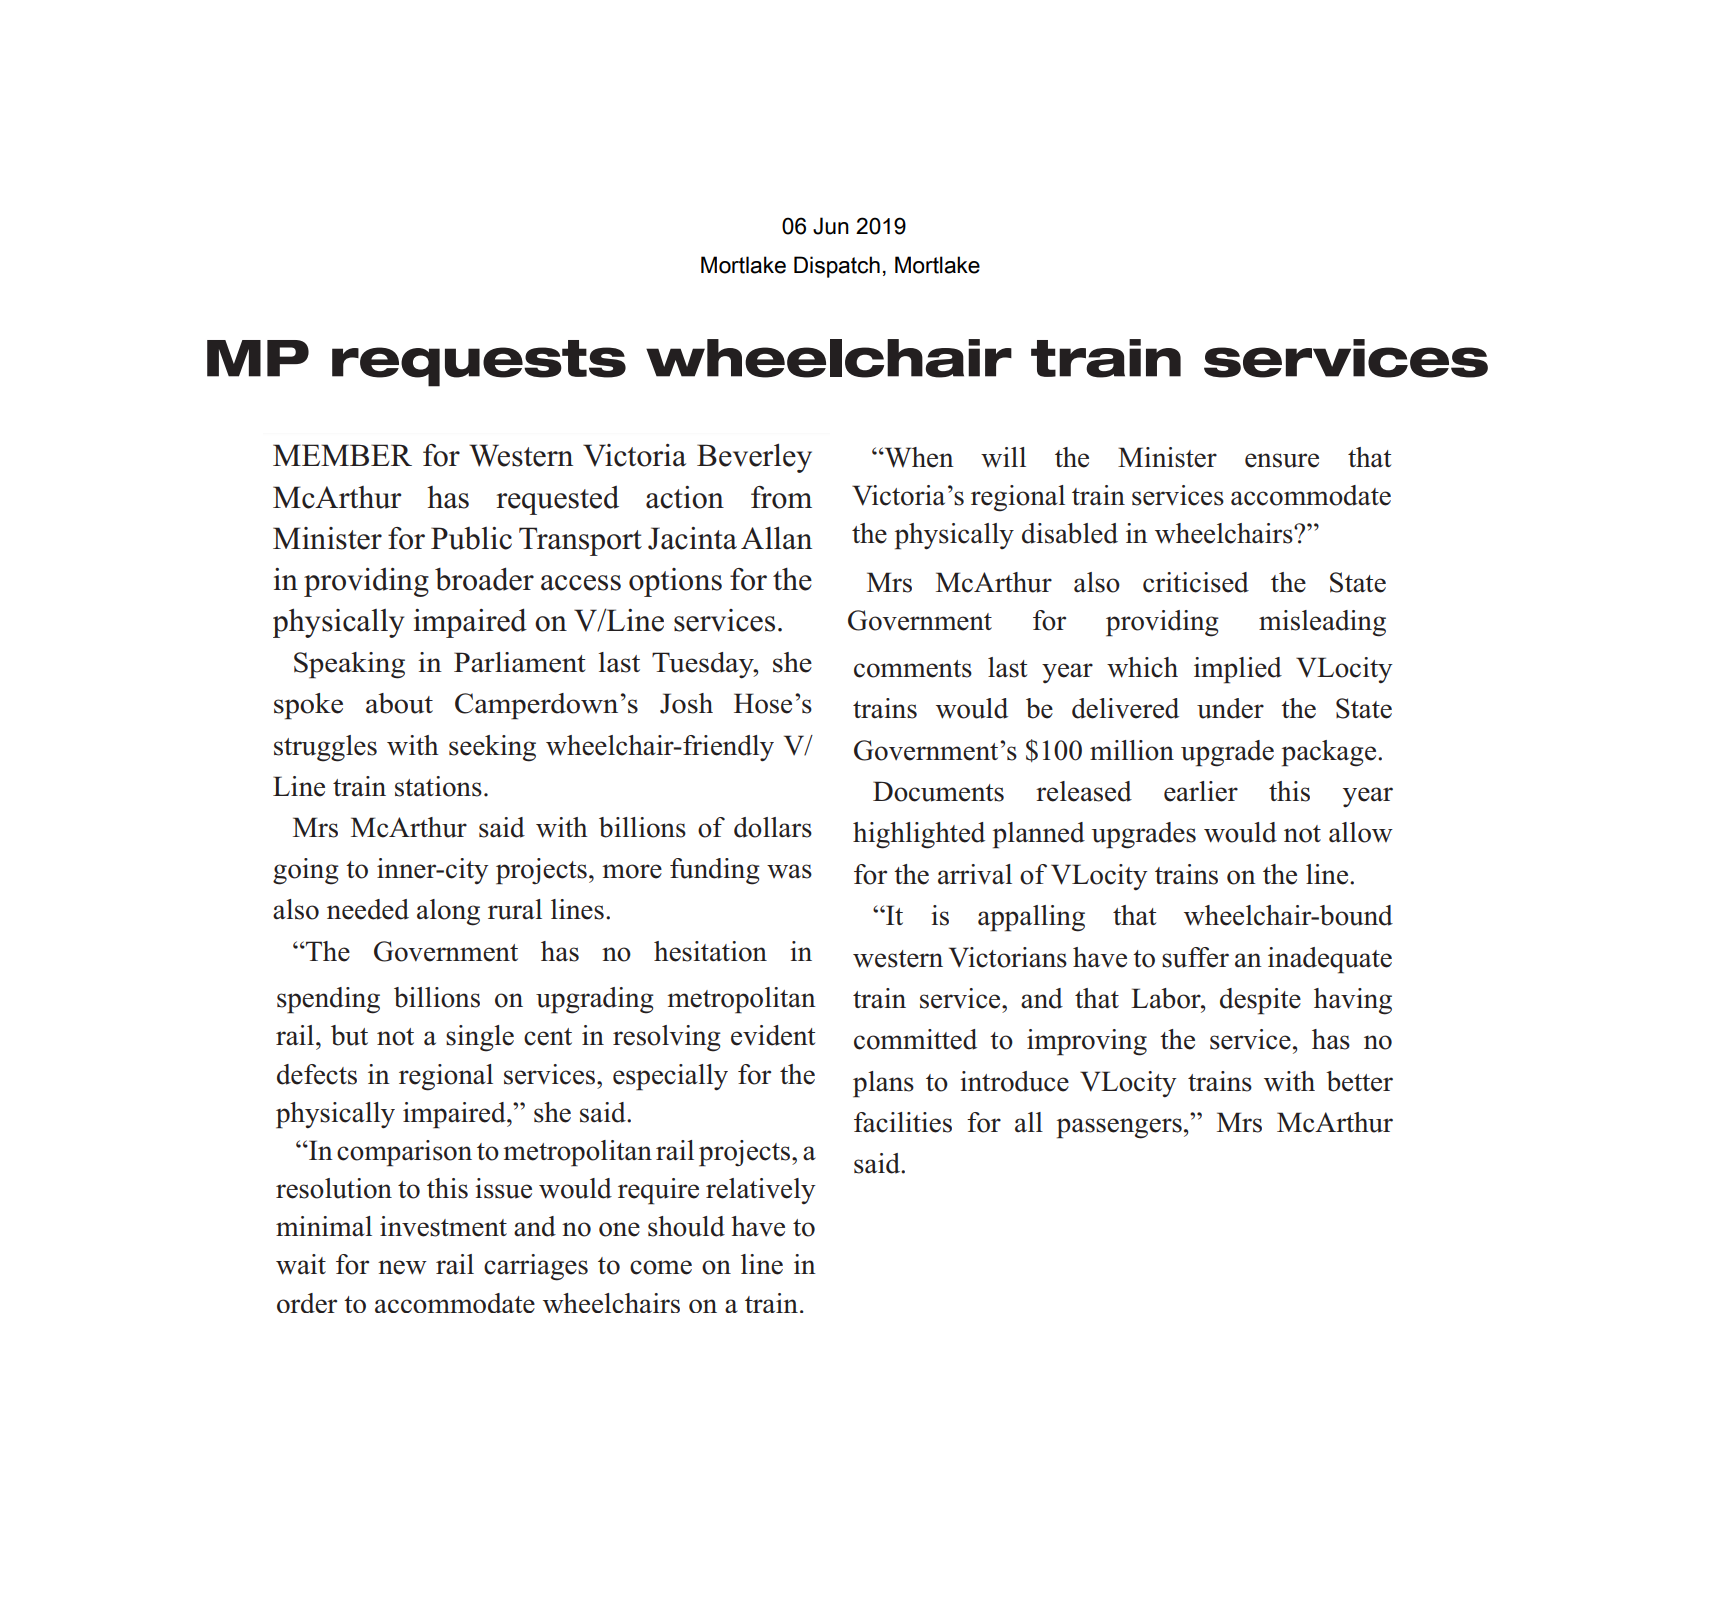 06062019 MP requests wheelchair train services.png